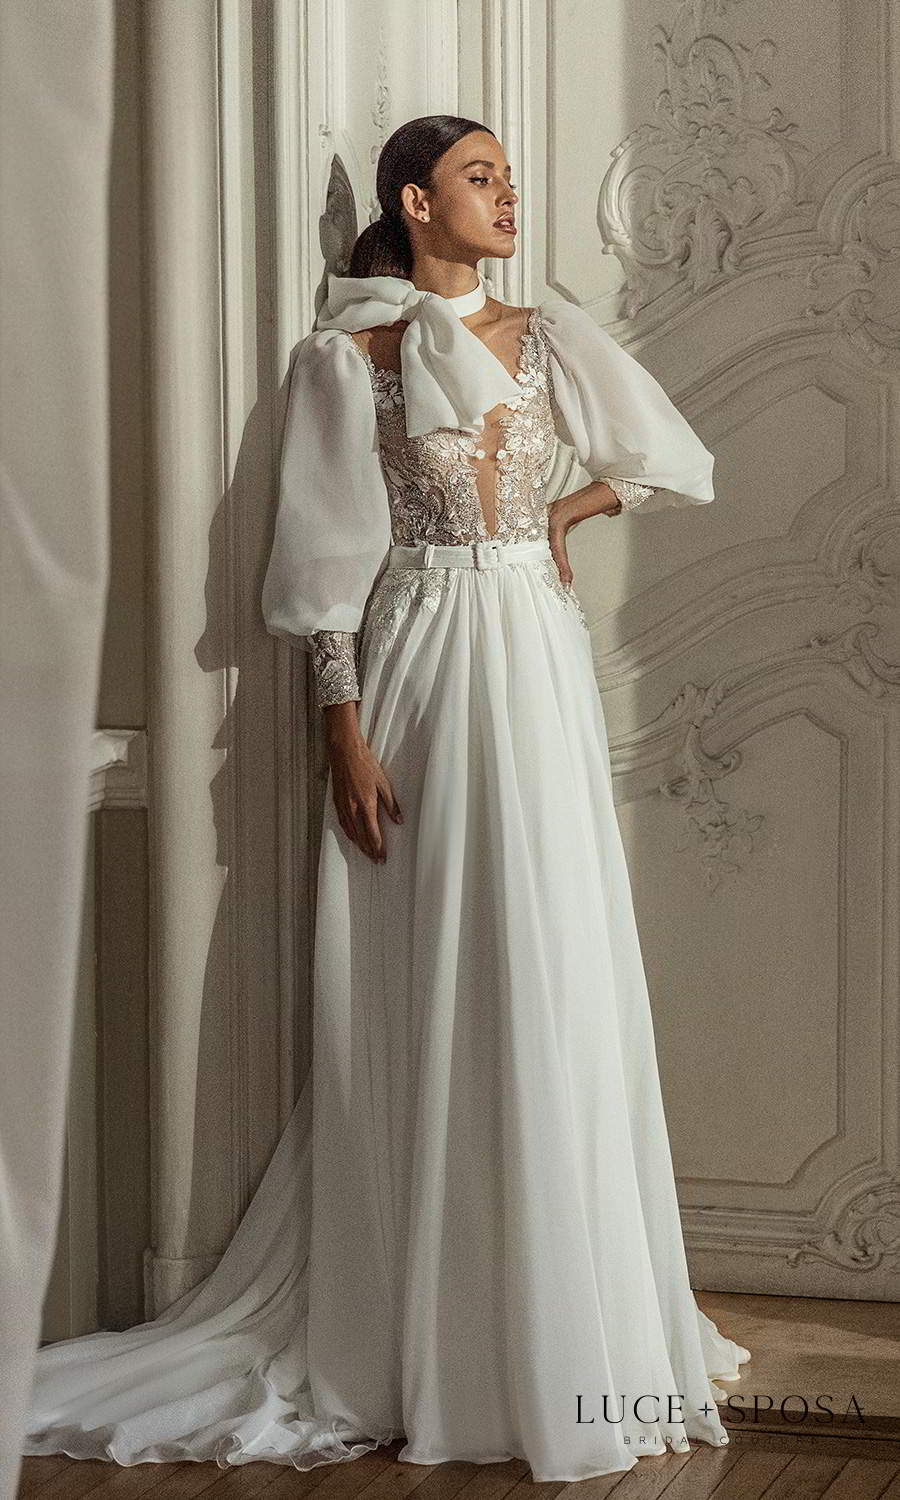 luce sposa 2021 shades of couture bridal bishop sleeves plunging v neckline heavily embellished bodice clean skirt a line wedding dress chapel train (aubrey) mv